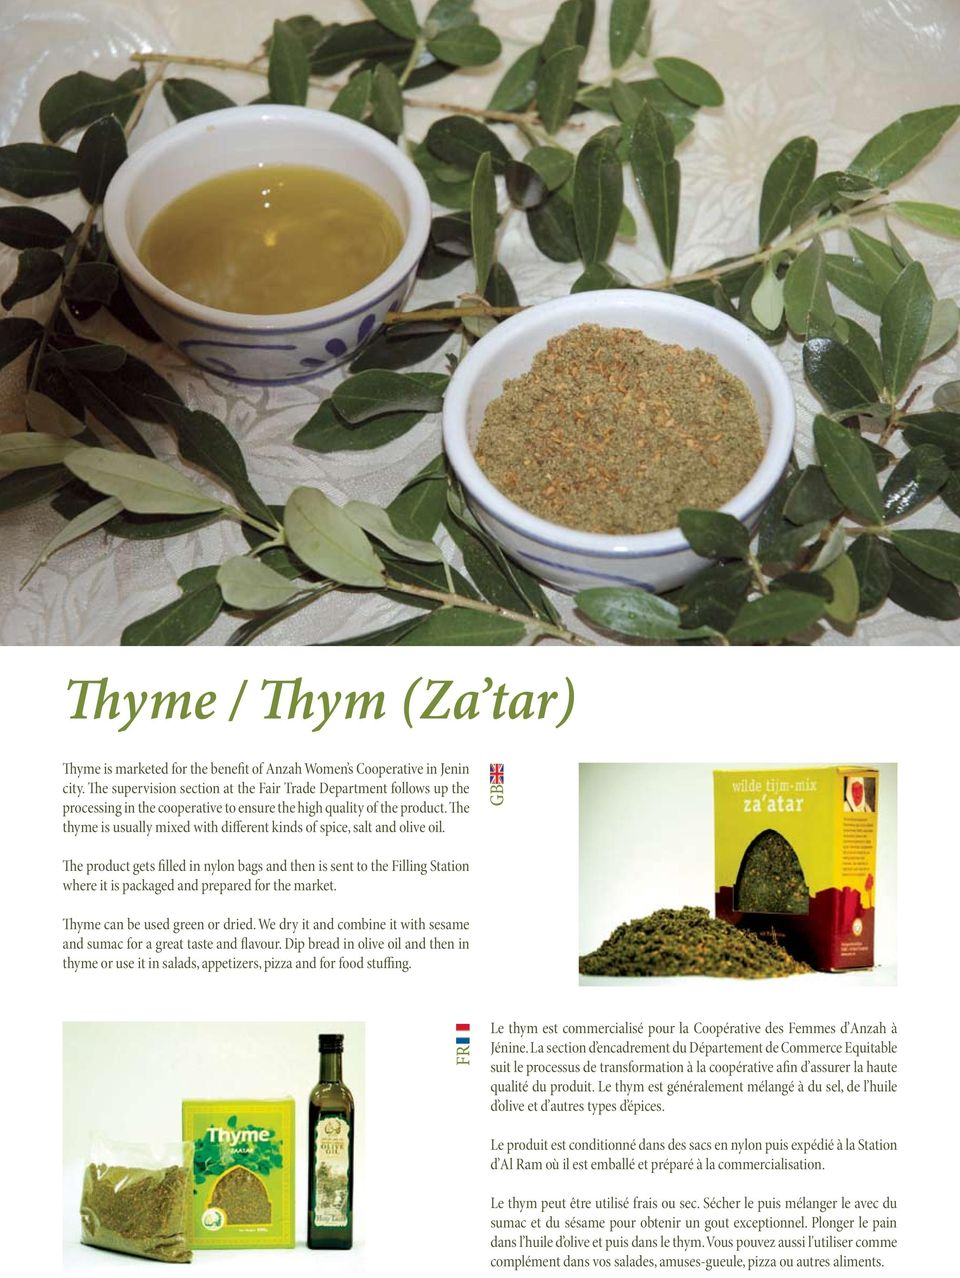 The thyme is usually mixed with different kinds of spice, salt and olive oil.